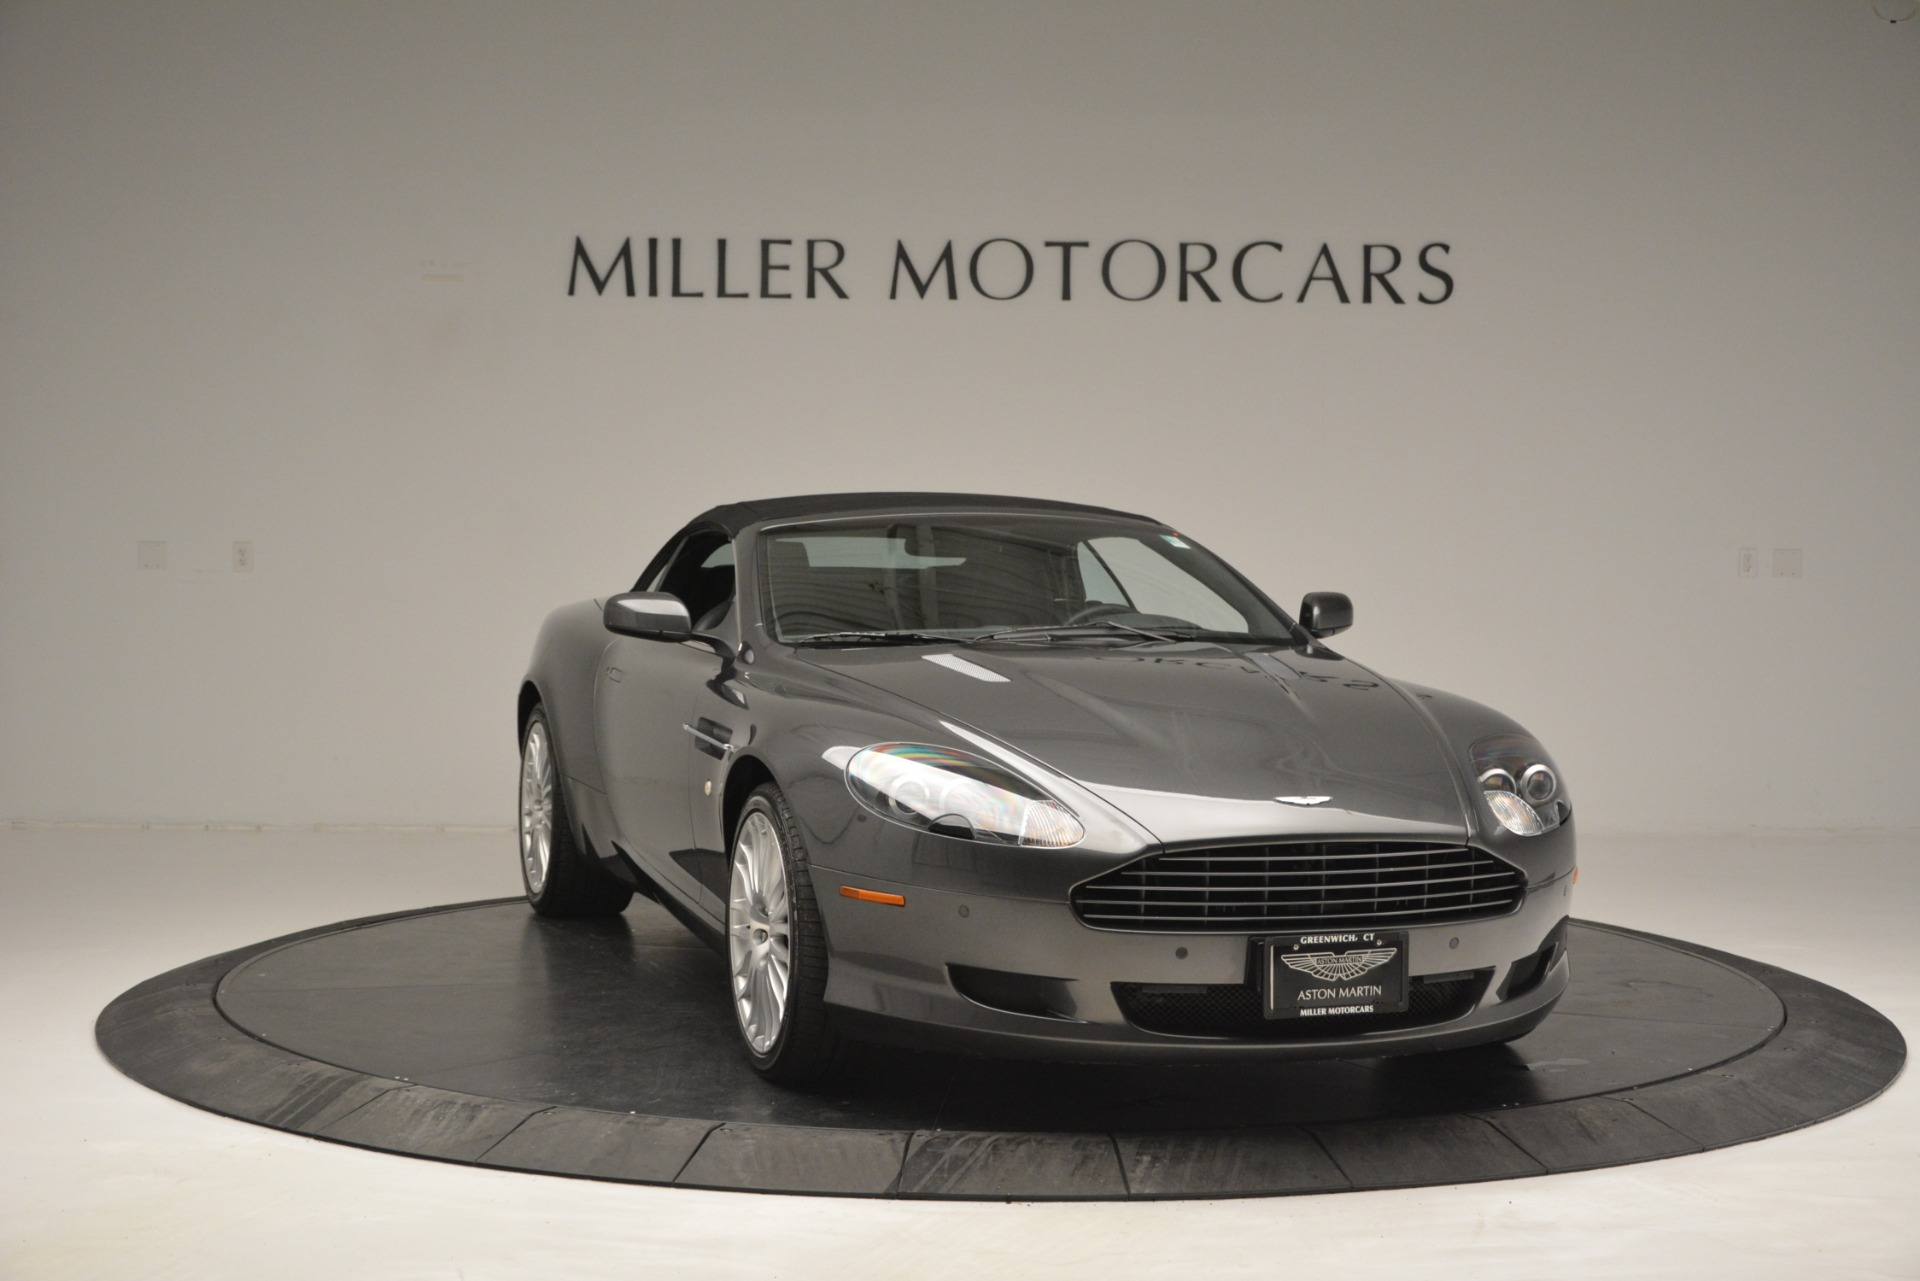 Used 2009 Aston Martin DB9 Convertible For Sale In Westport, CT 2930_p15